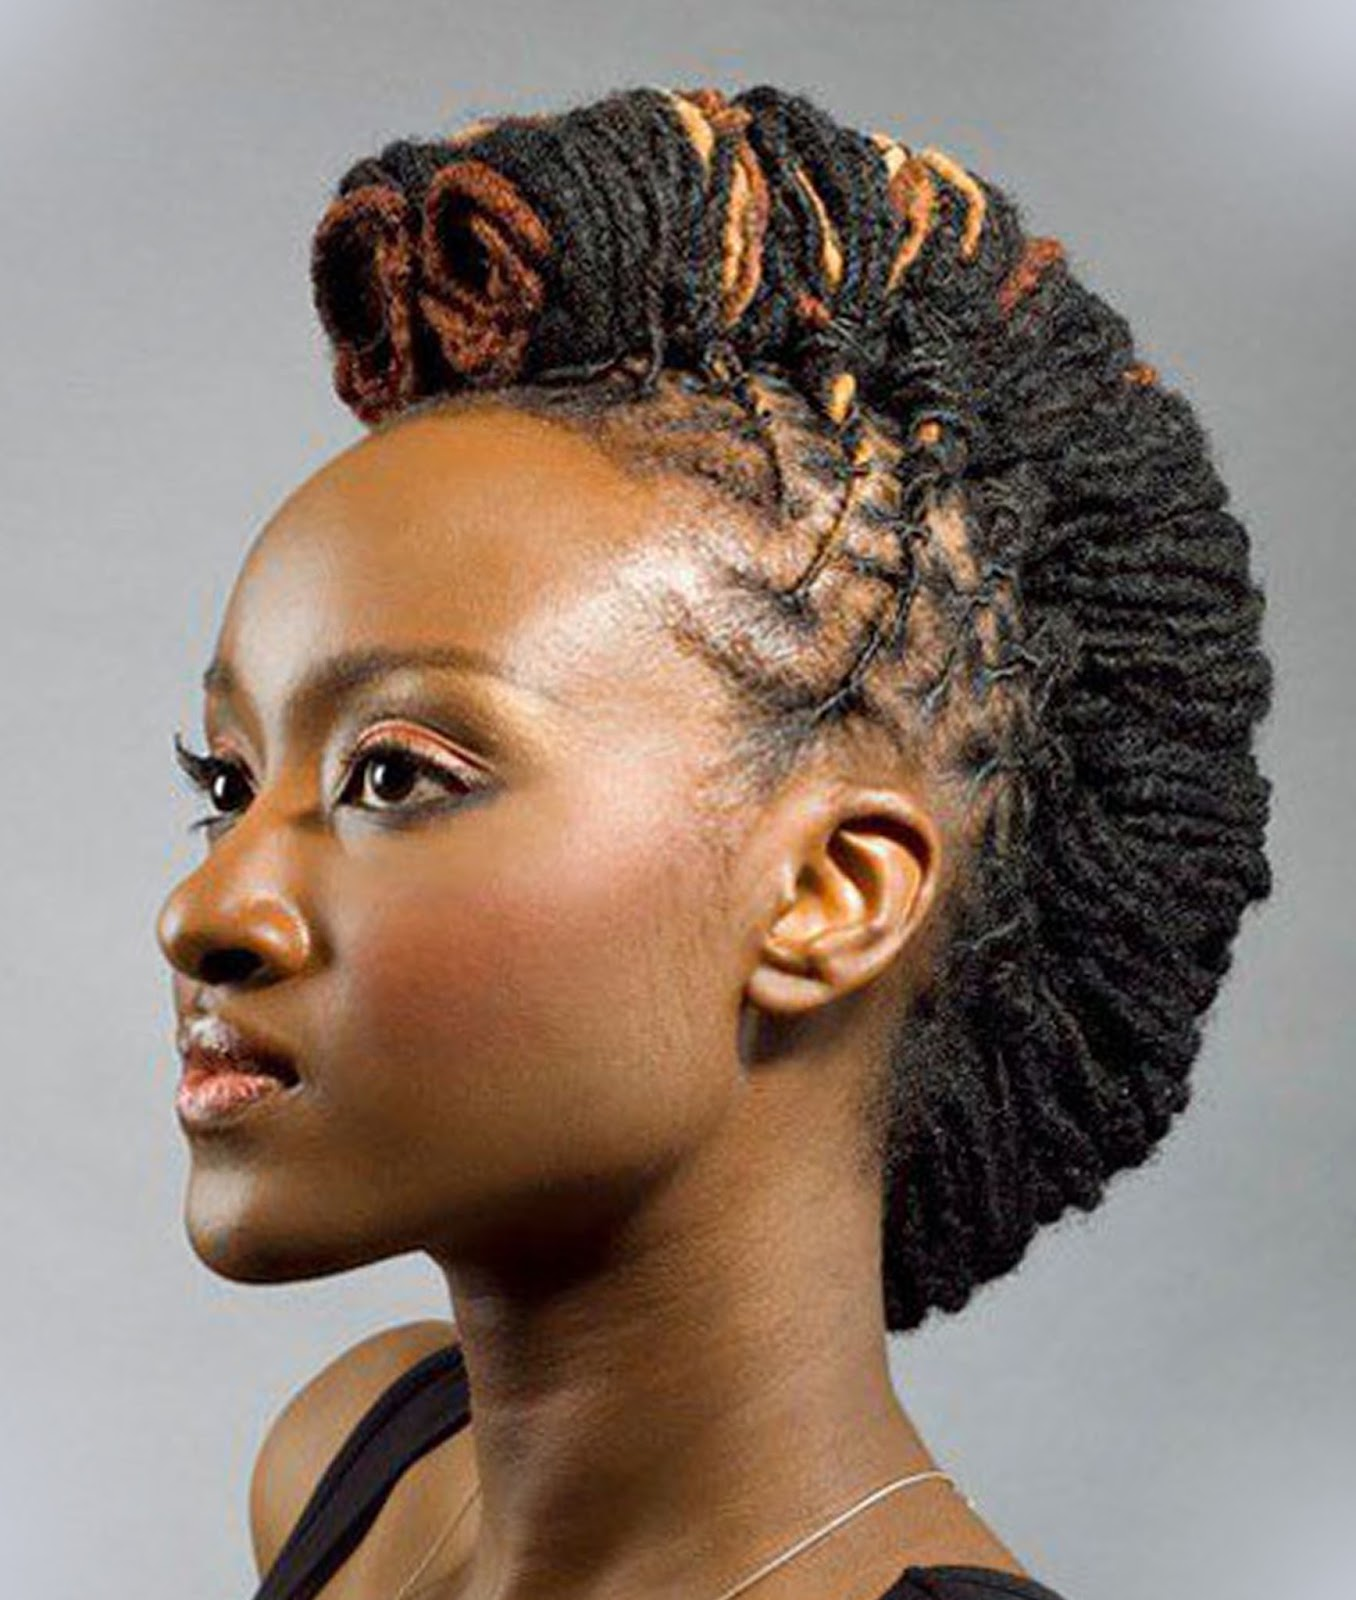 Mohawk Styles For Black Women 2016 Hairstyles Spot